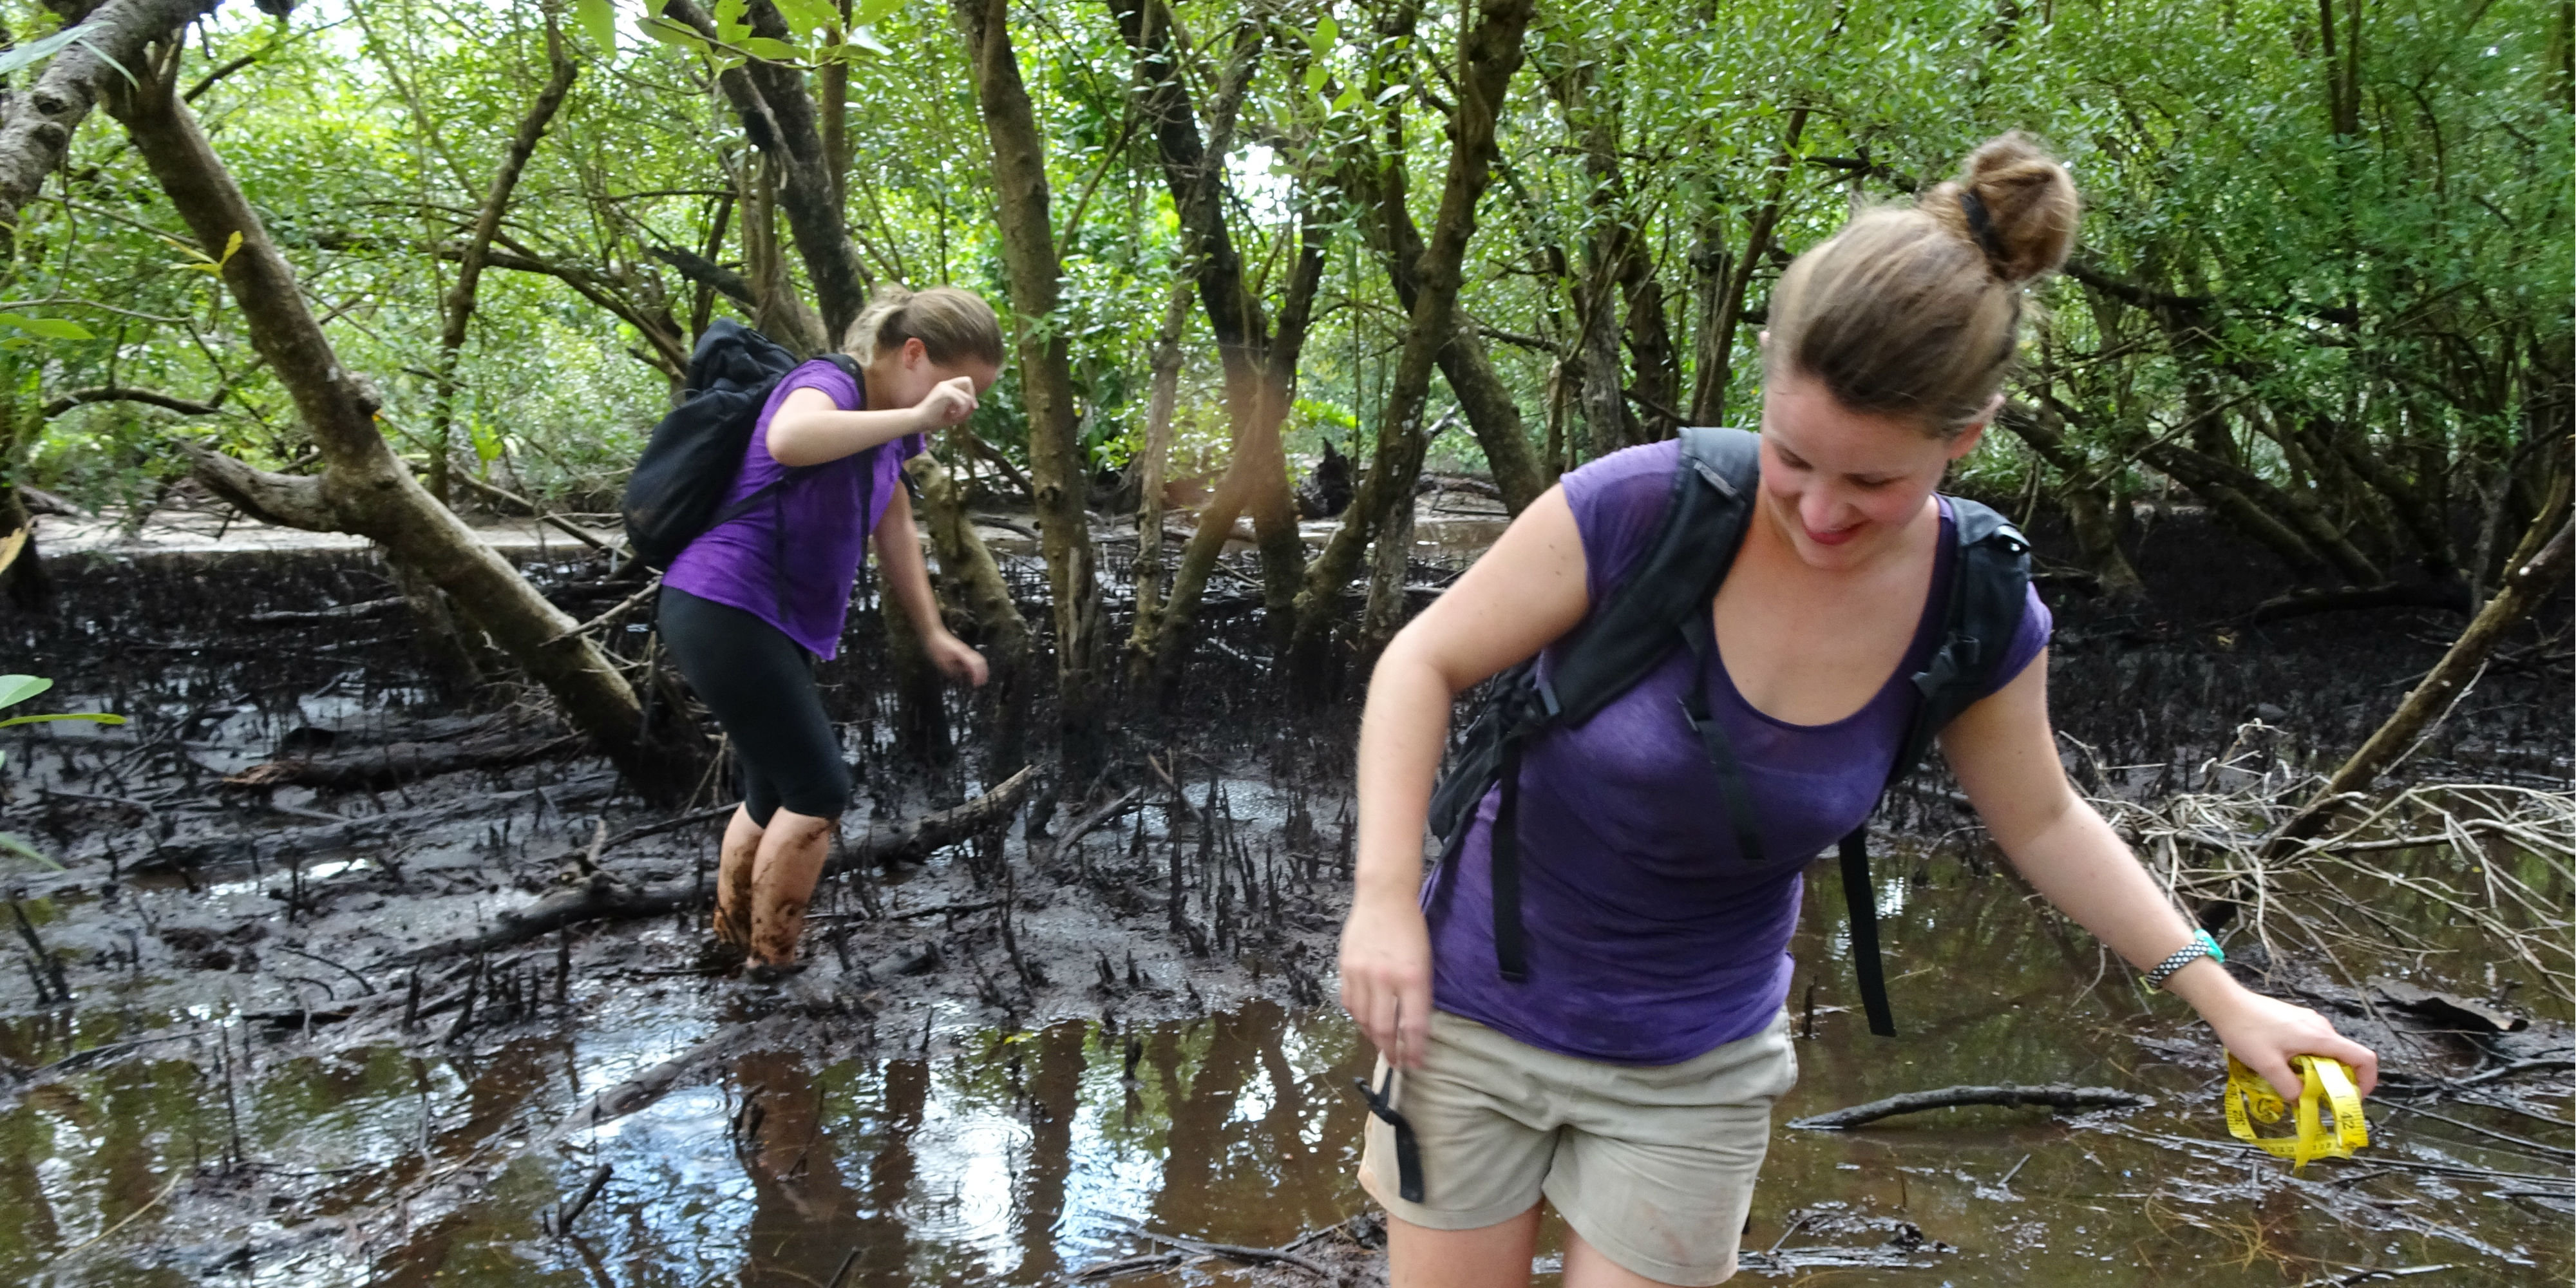 Participants help to record data on mangrove forests while volunteering in Curieuse.